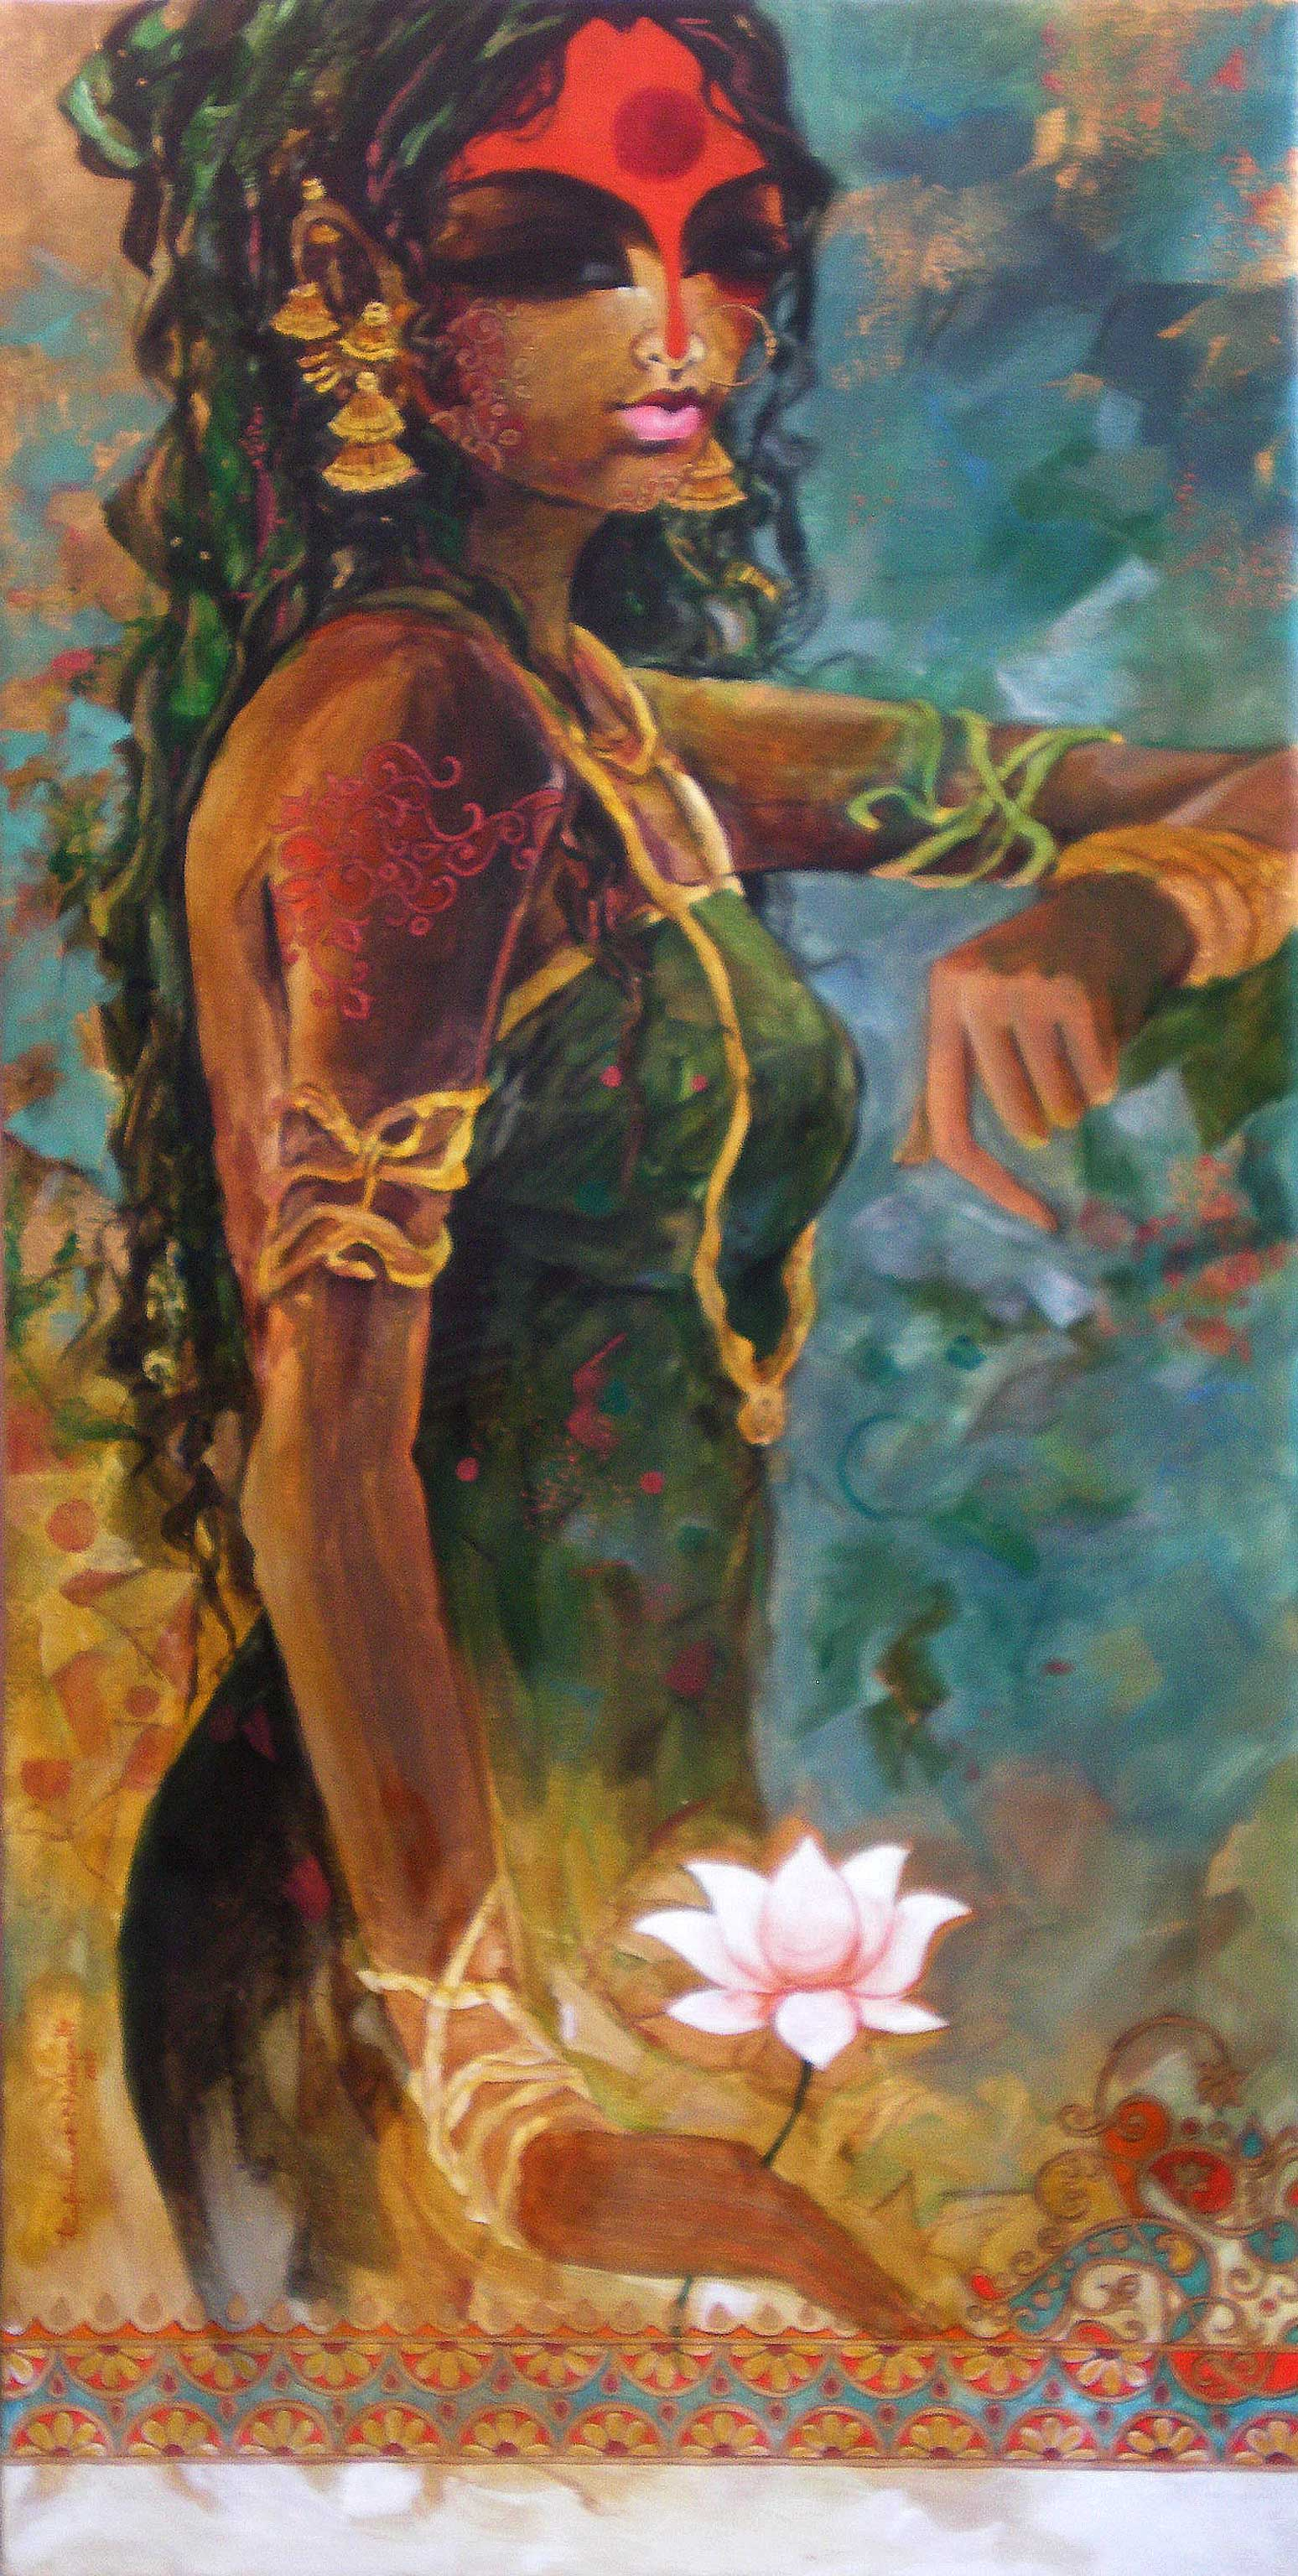 Buy 39 waiting 39 a beautiful painting by indian artist for Buy art online india